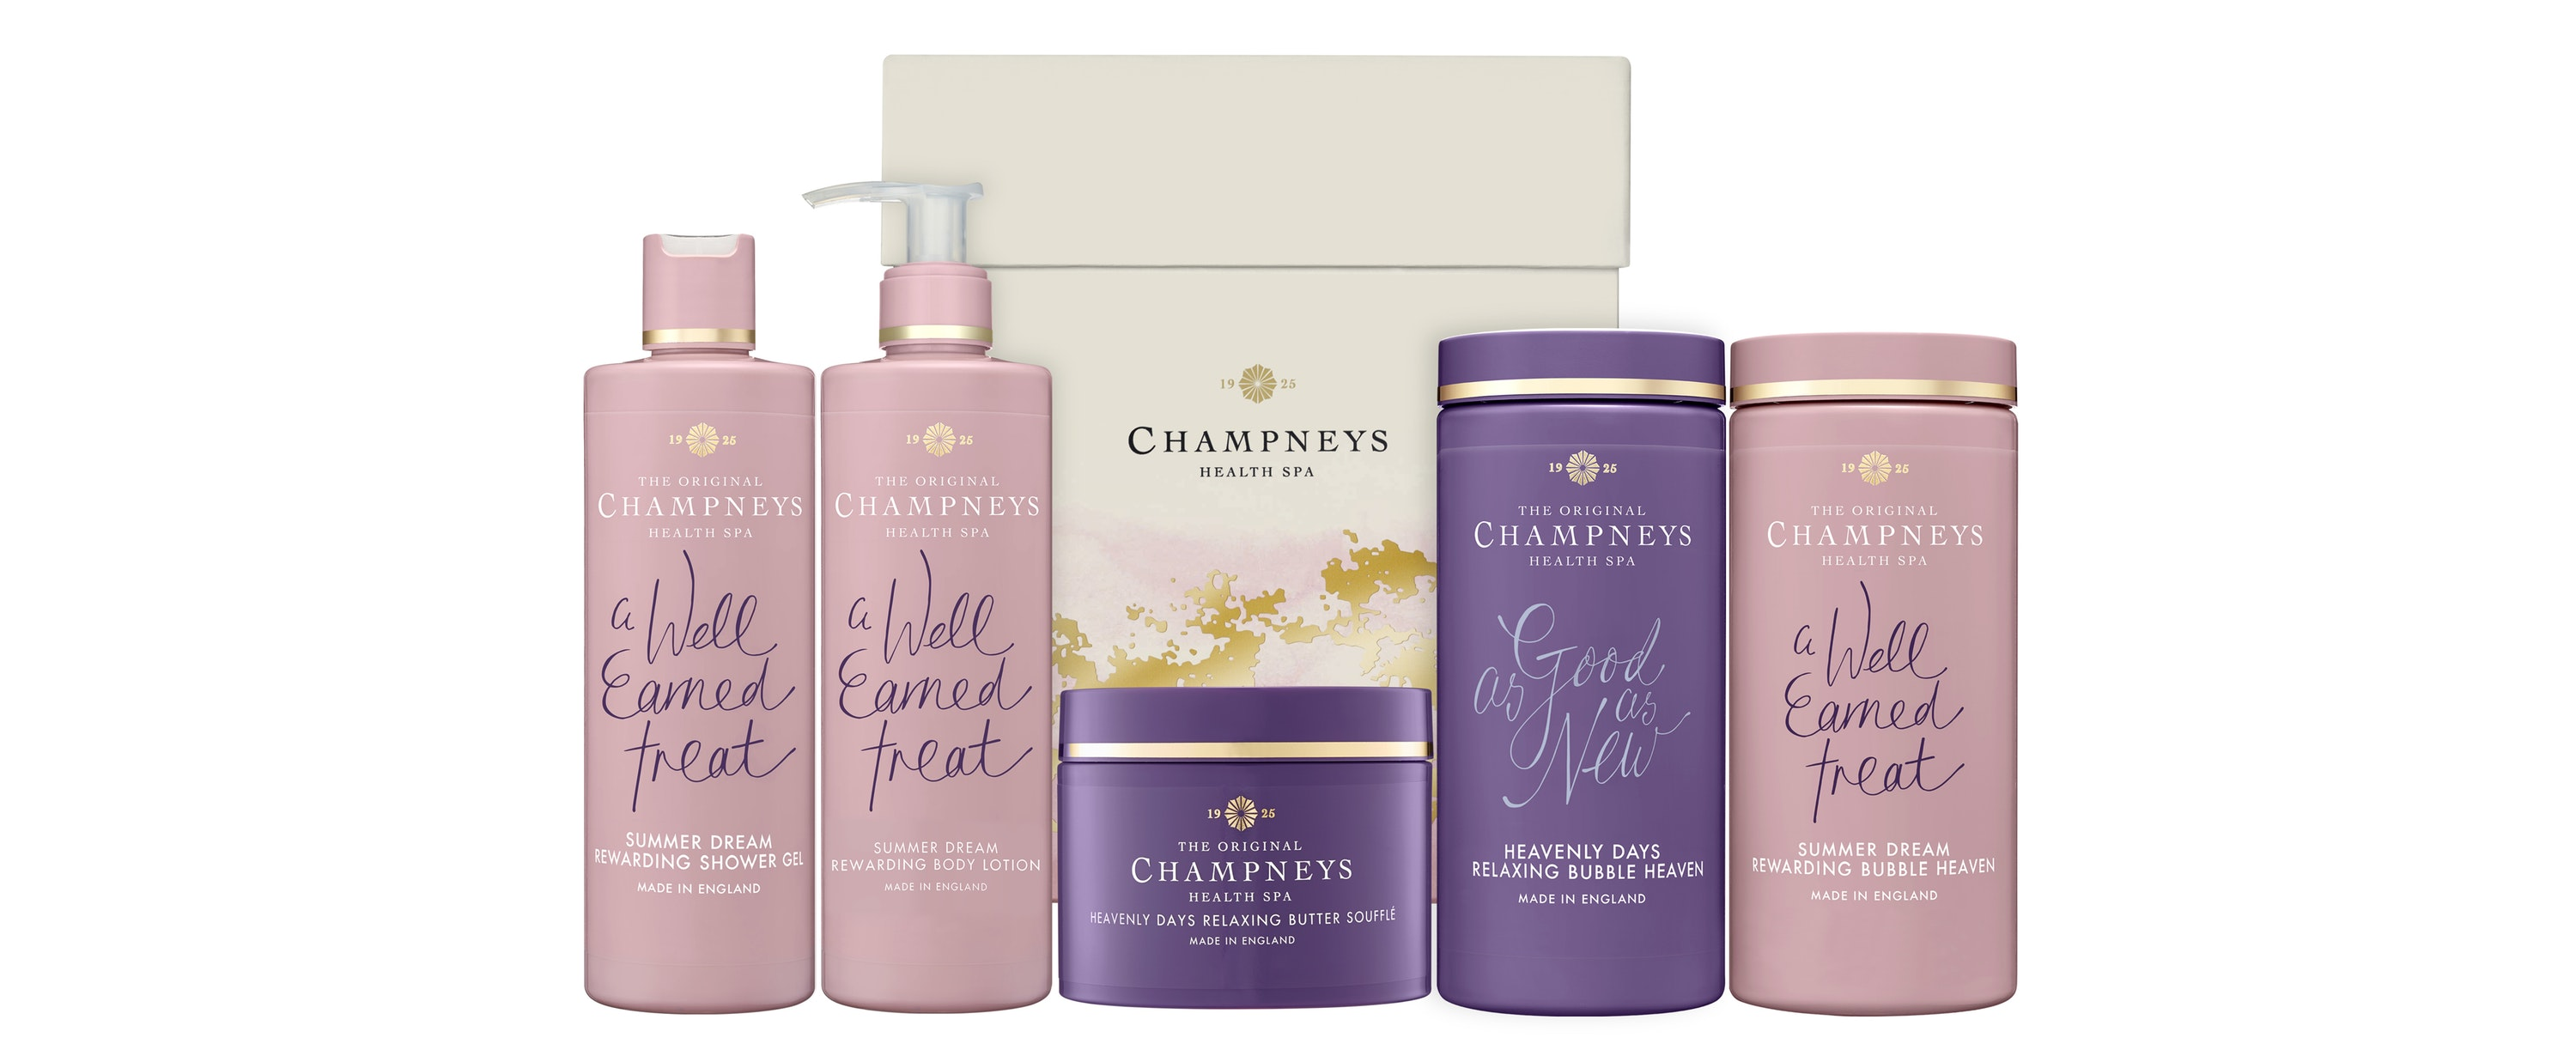 Champneys A Well Earned Treat